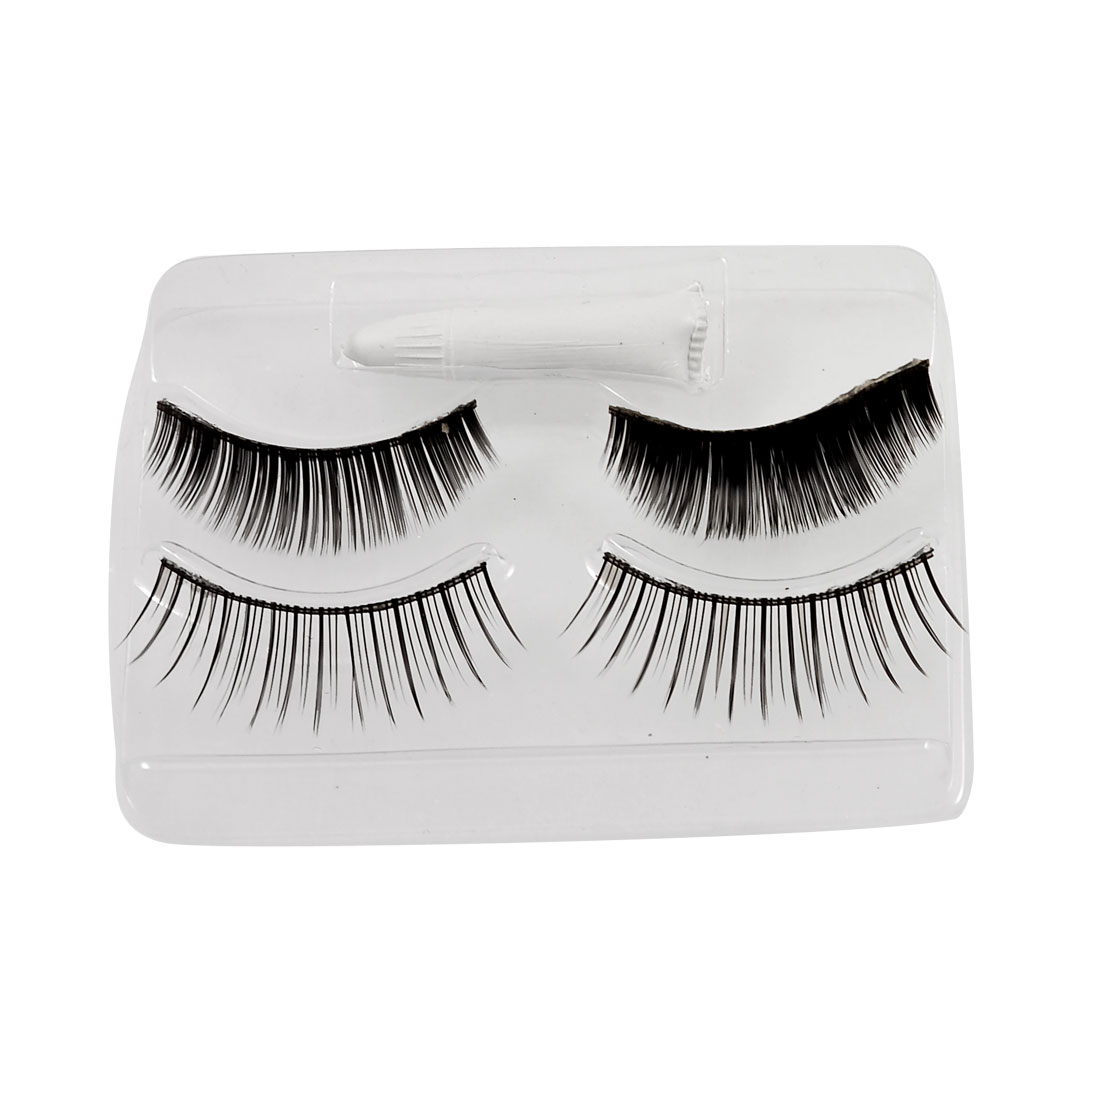 2 Pairs Making Up Black Long False Eyelashes Replacement for Women